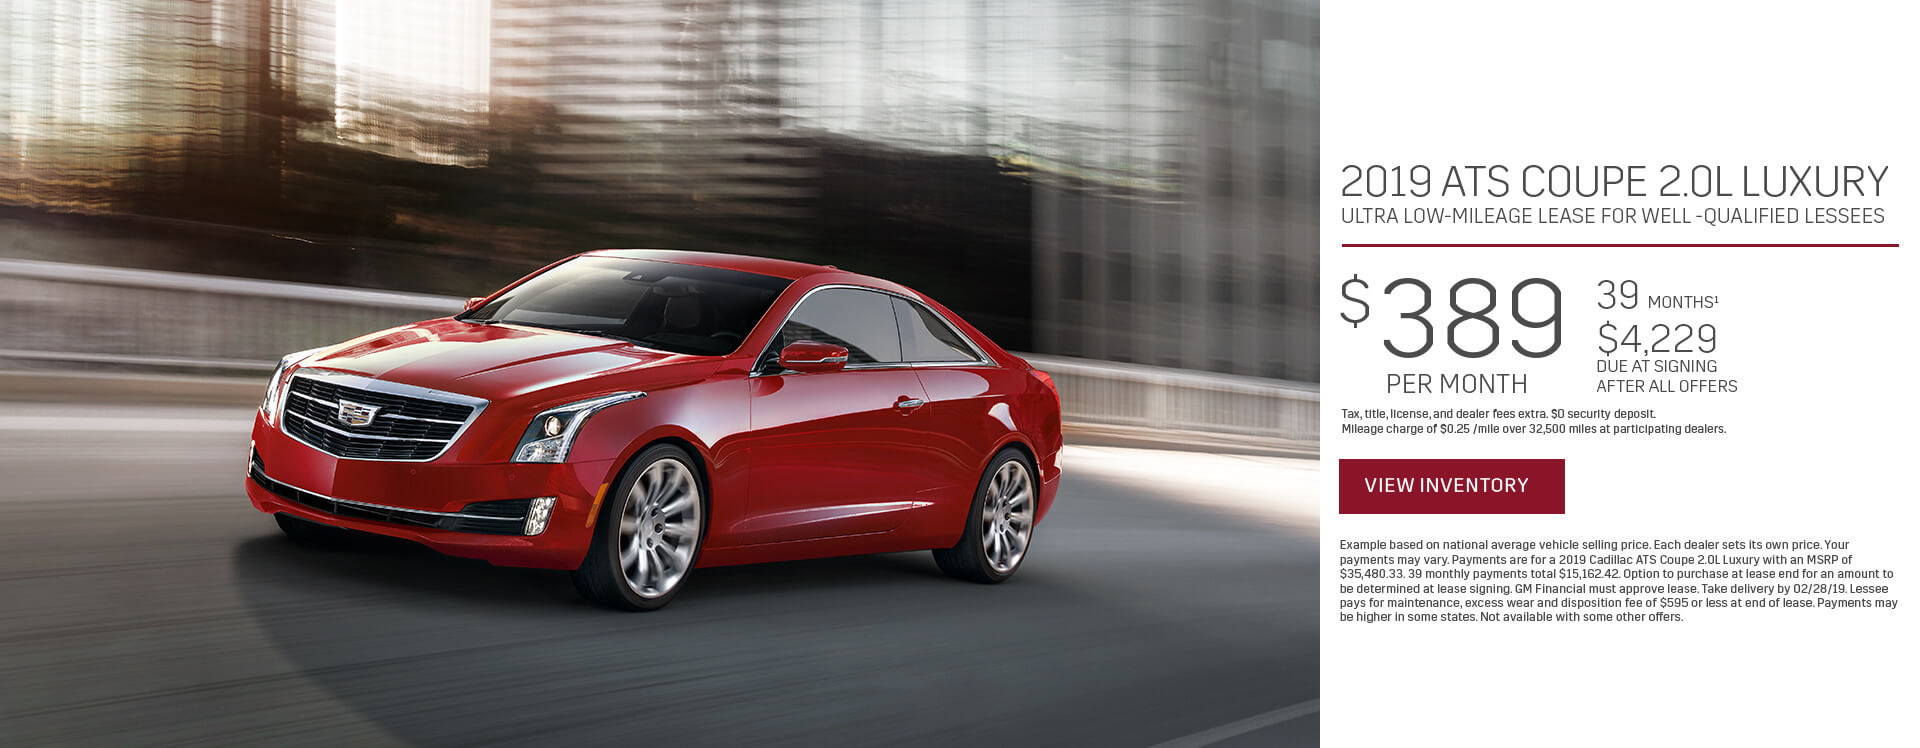 ATS Coupe Lease